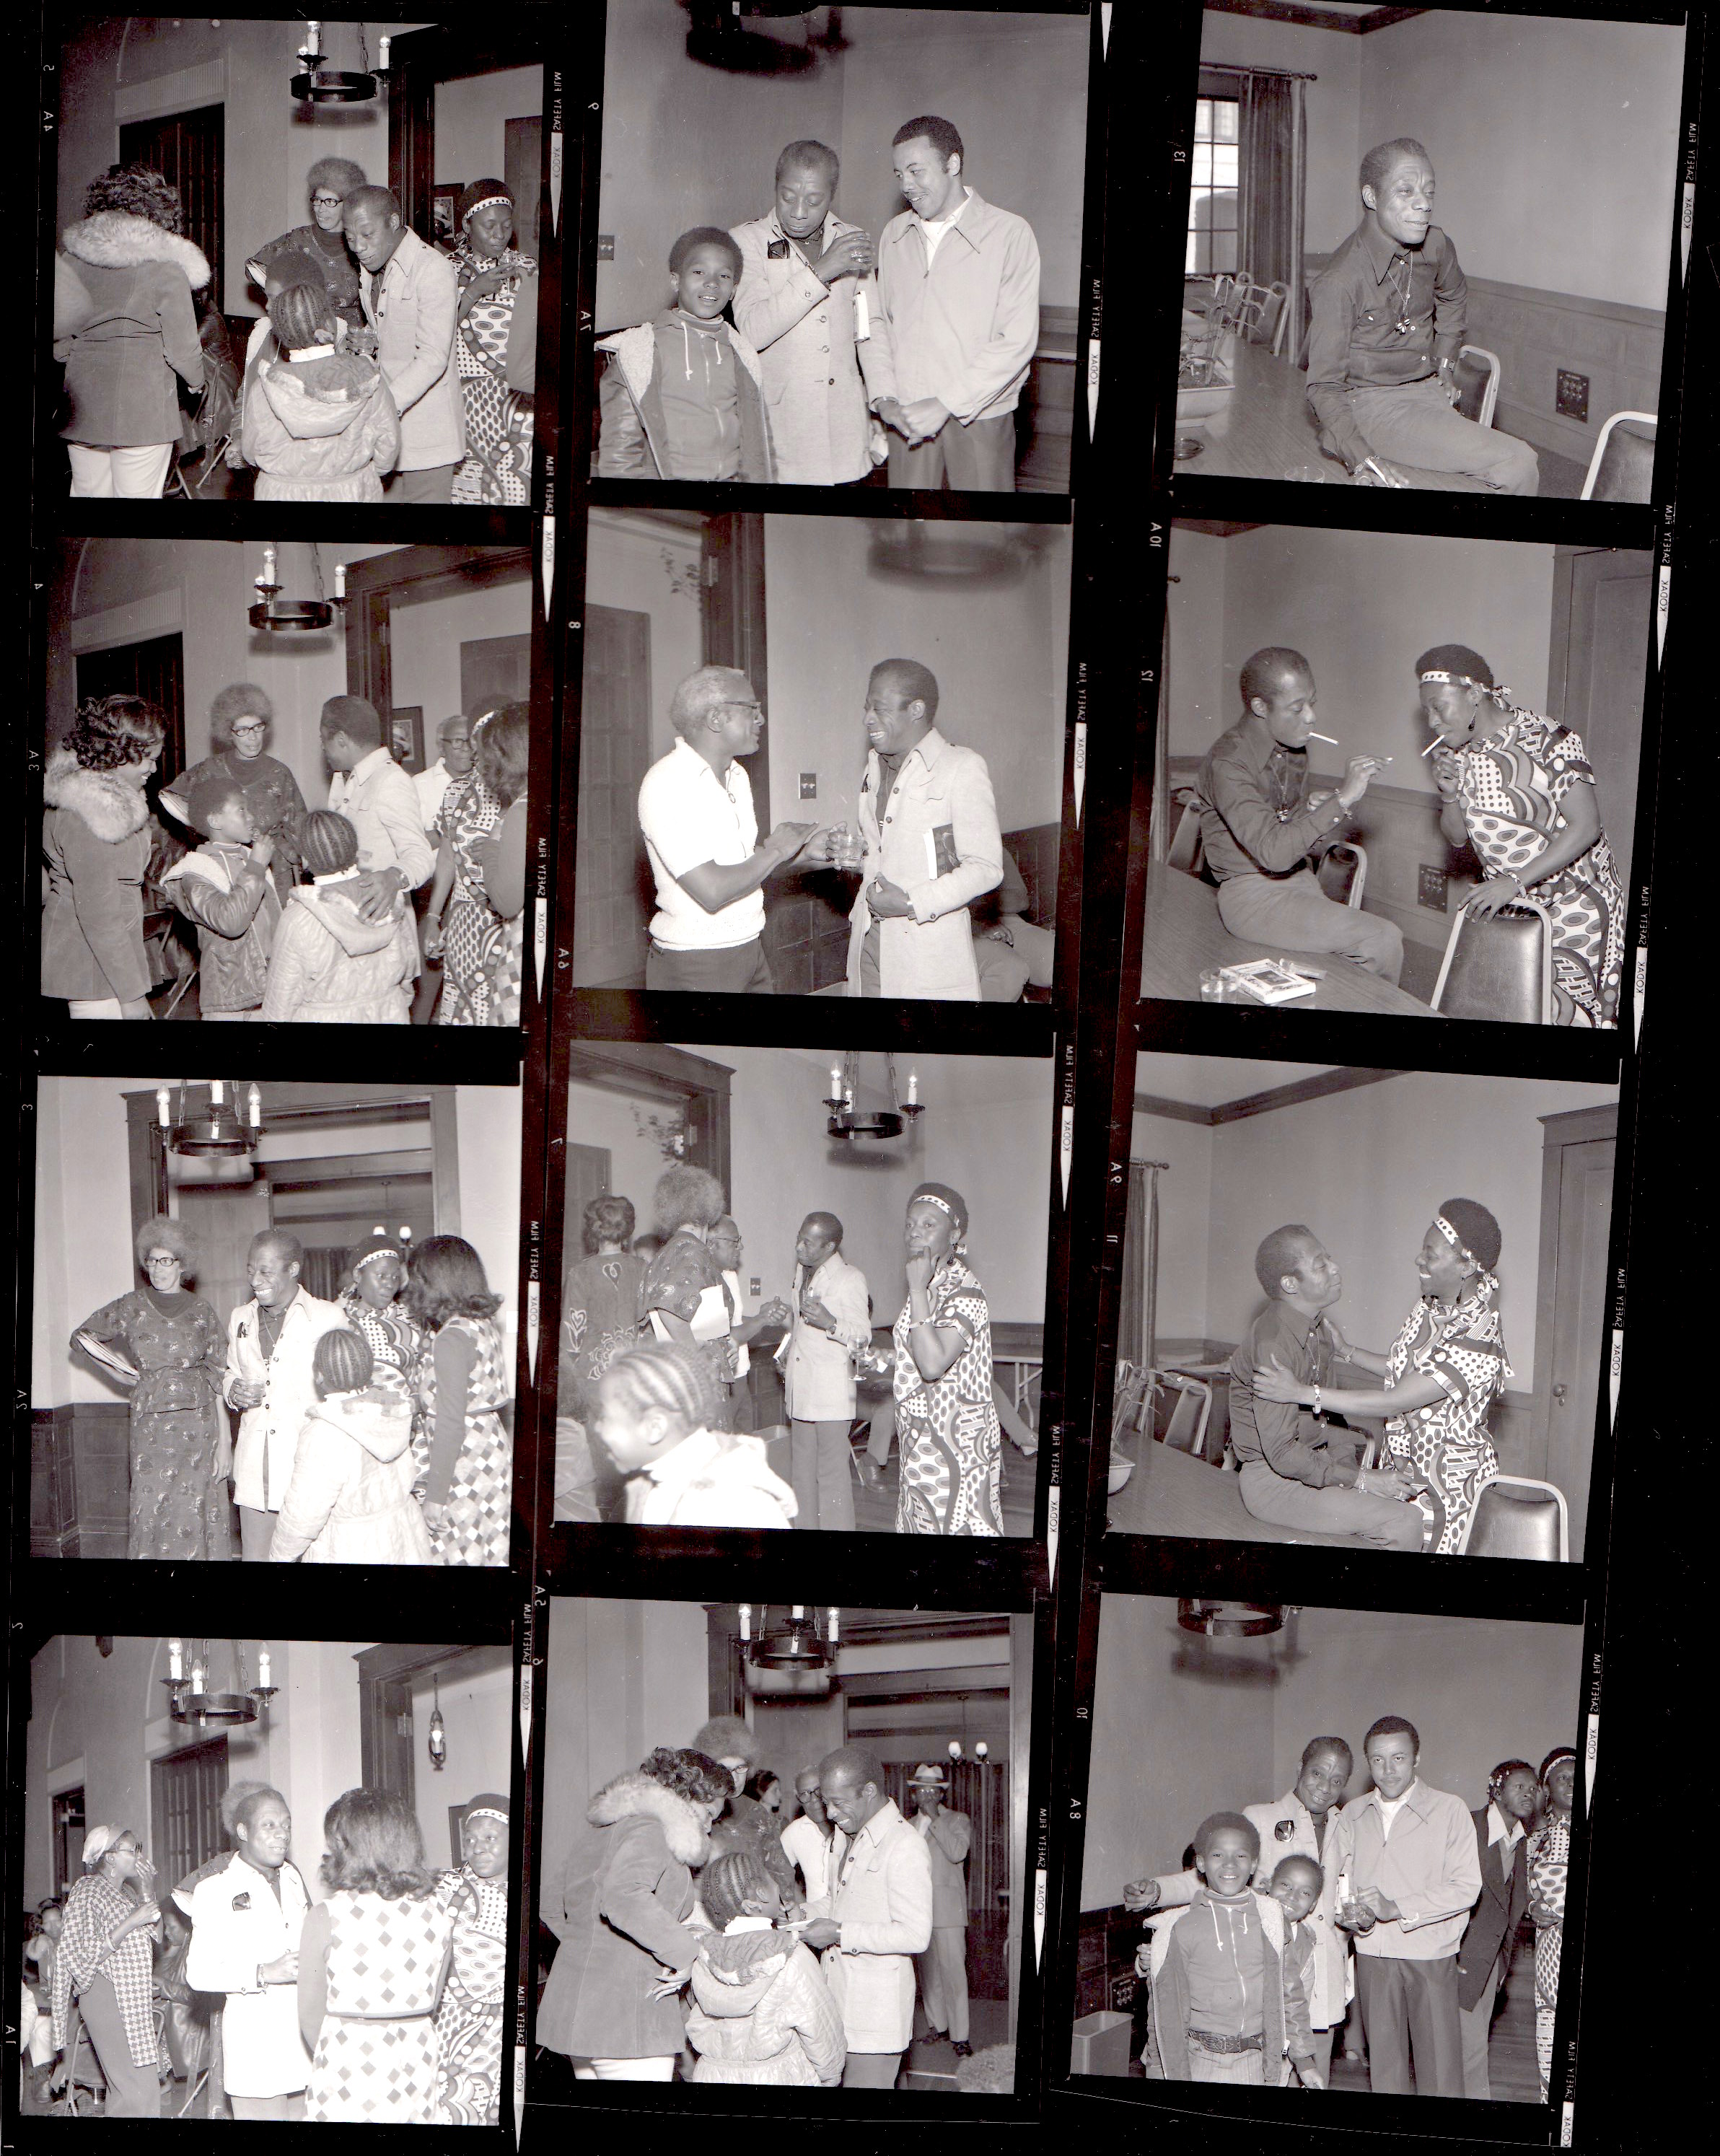 James Baldwin Contact Sheet